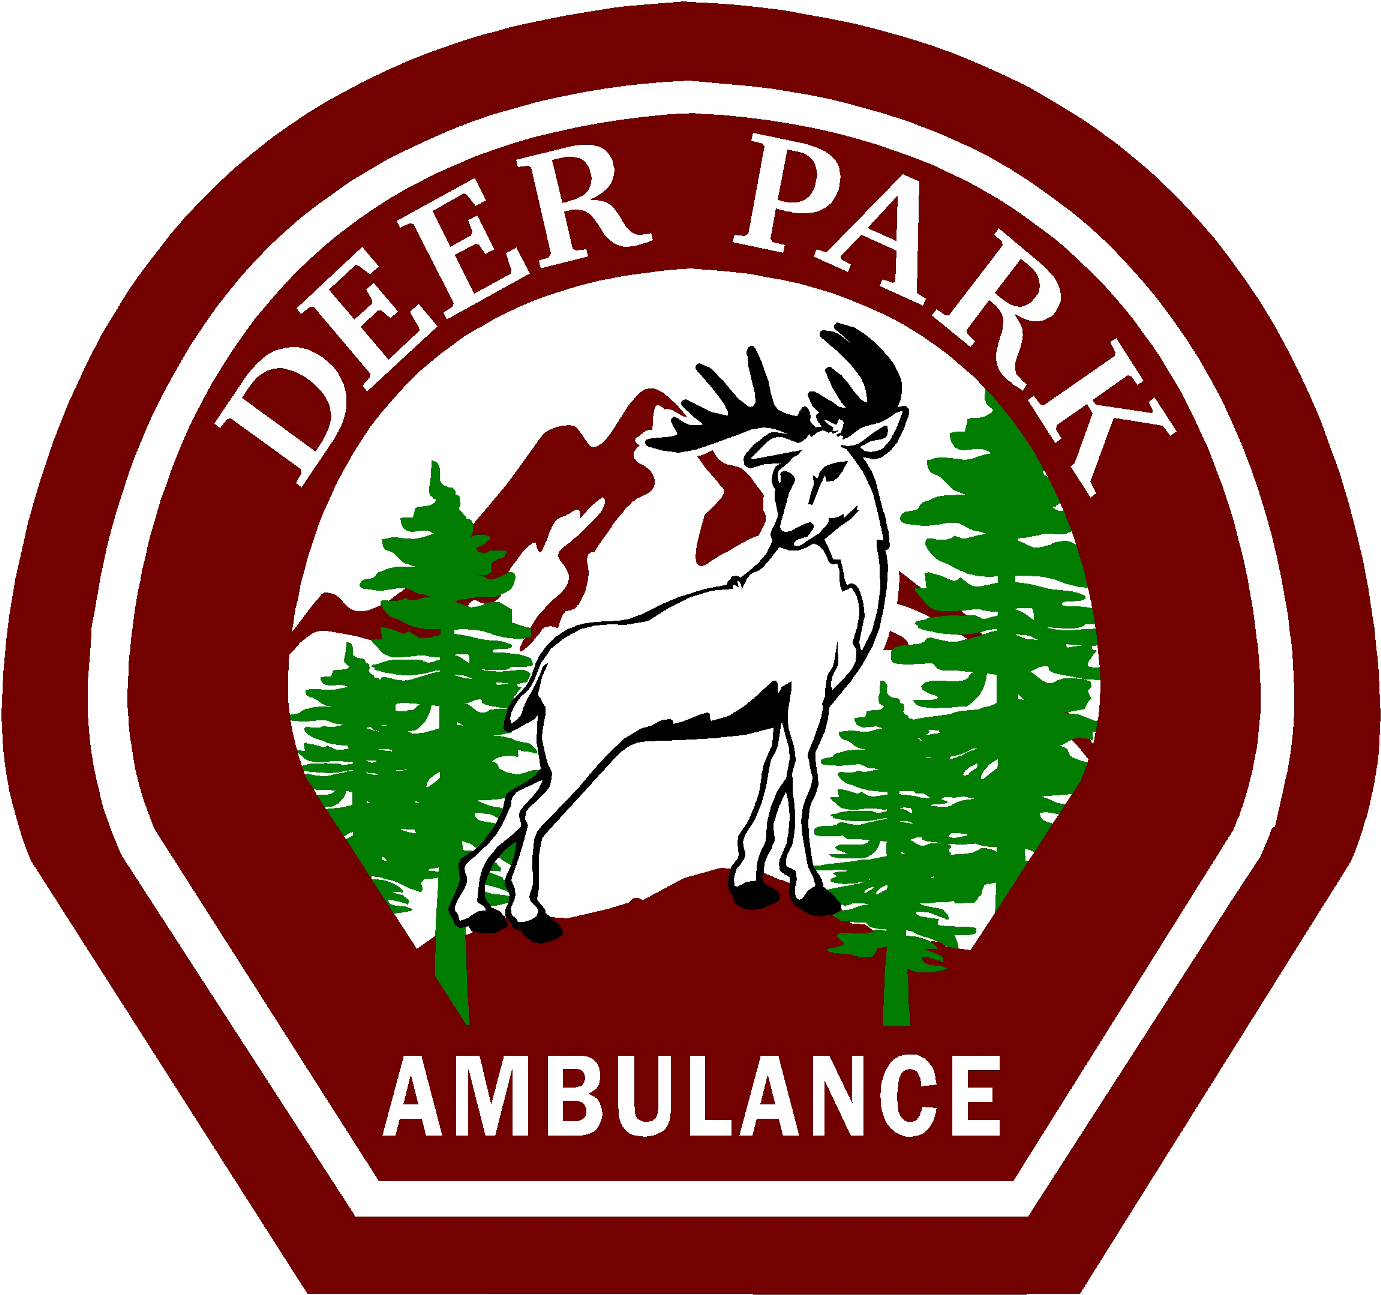 Deer Park Volunteer Ambulance